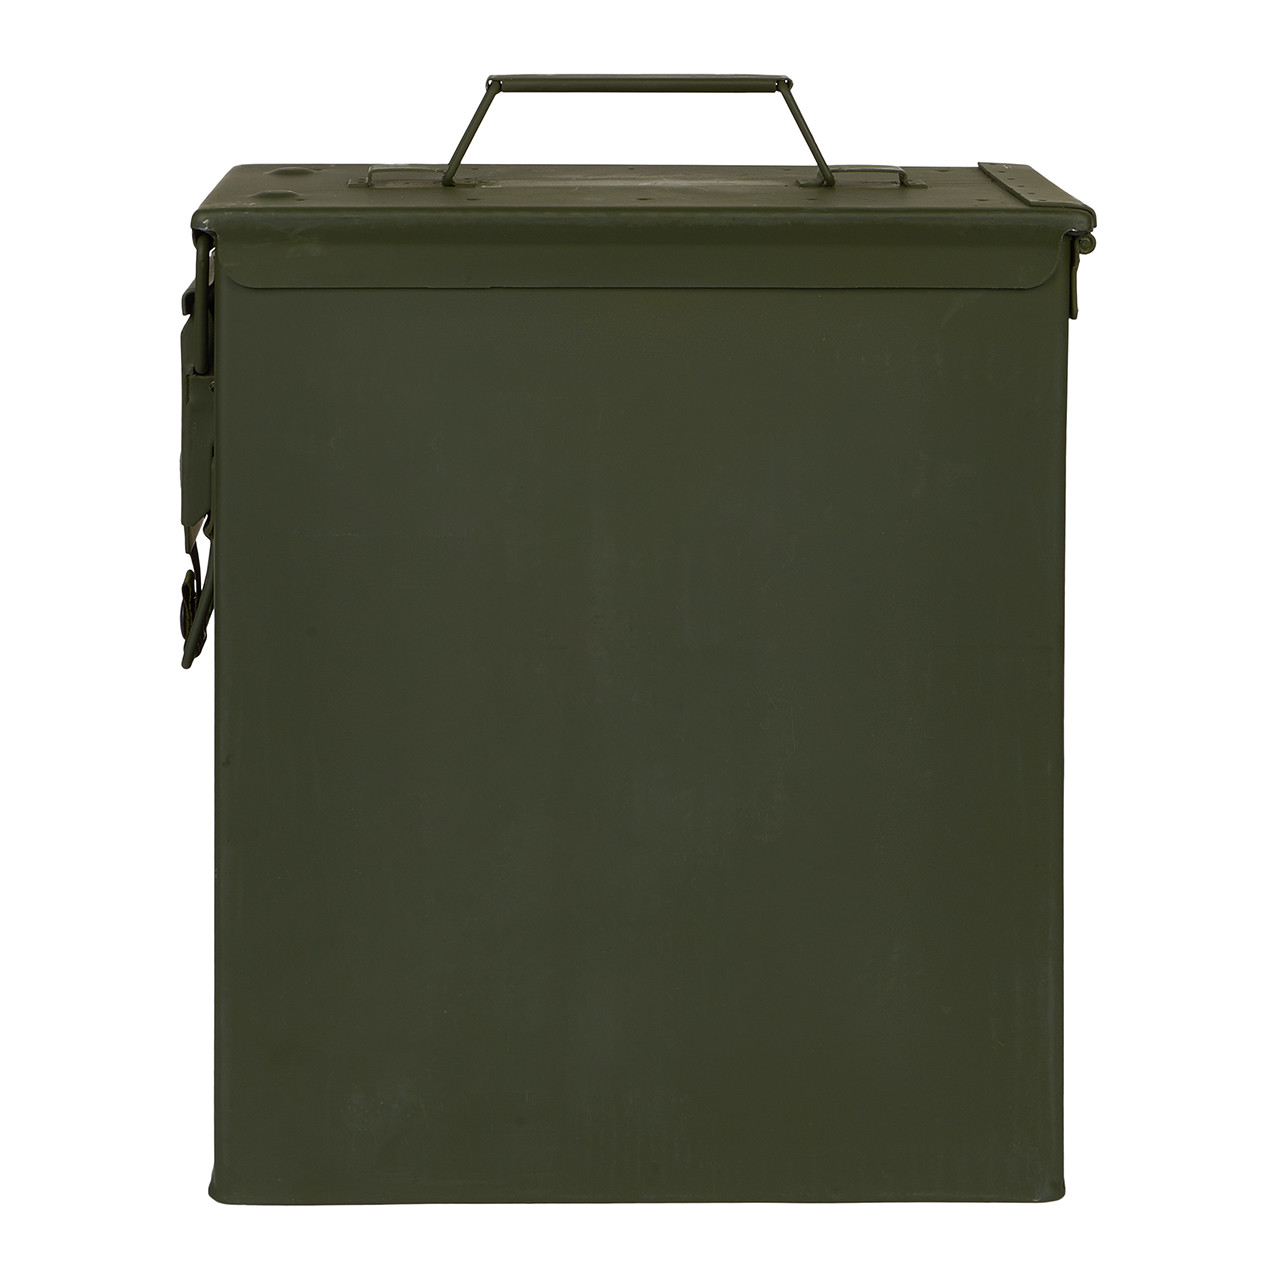 50342 G.I. ISSUE NVG – PADDED AMMO CAN